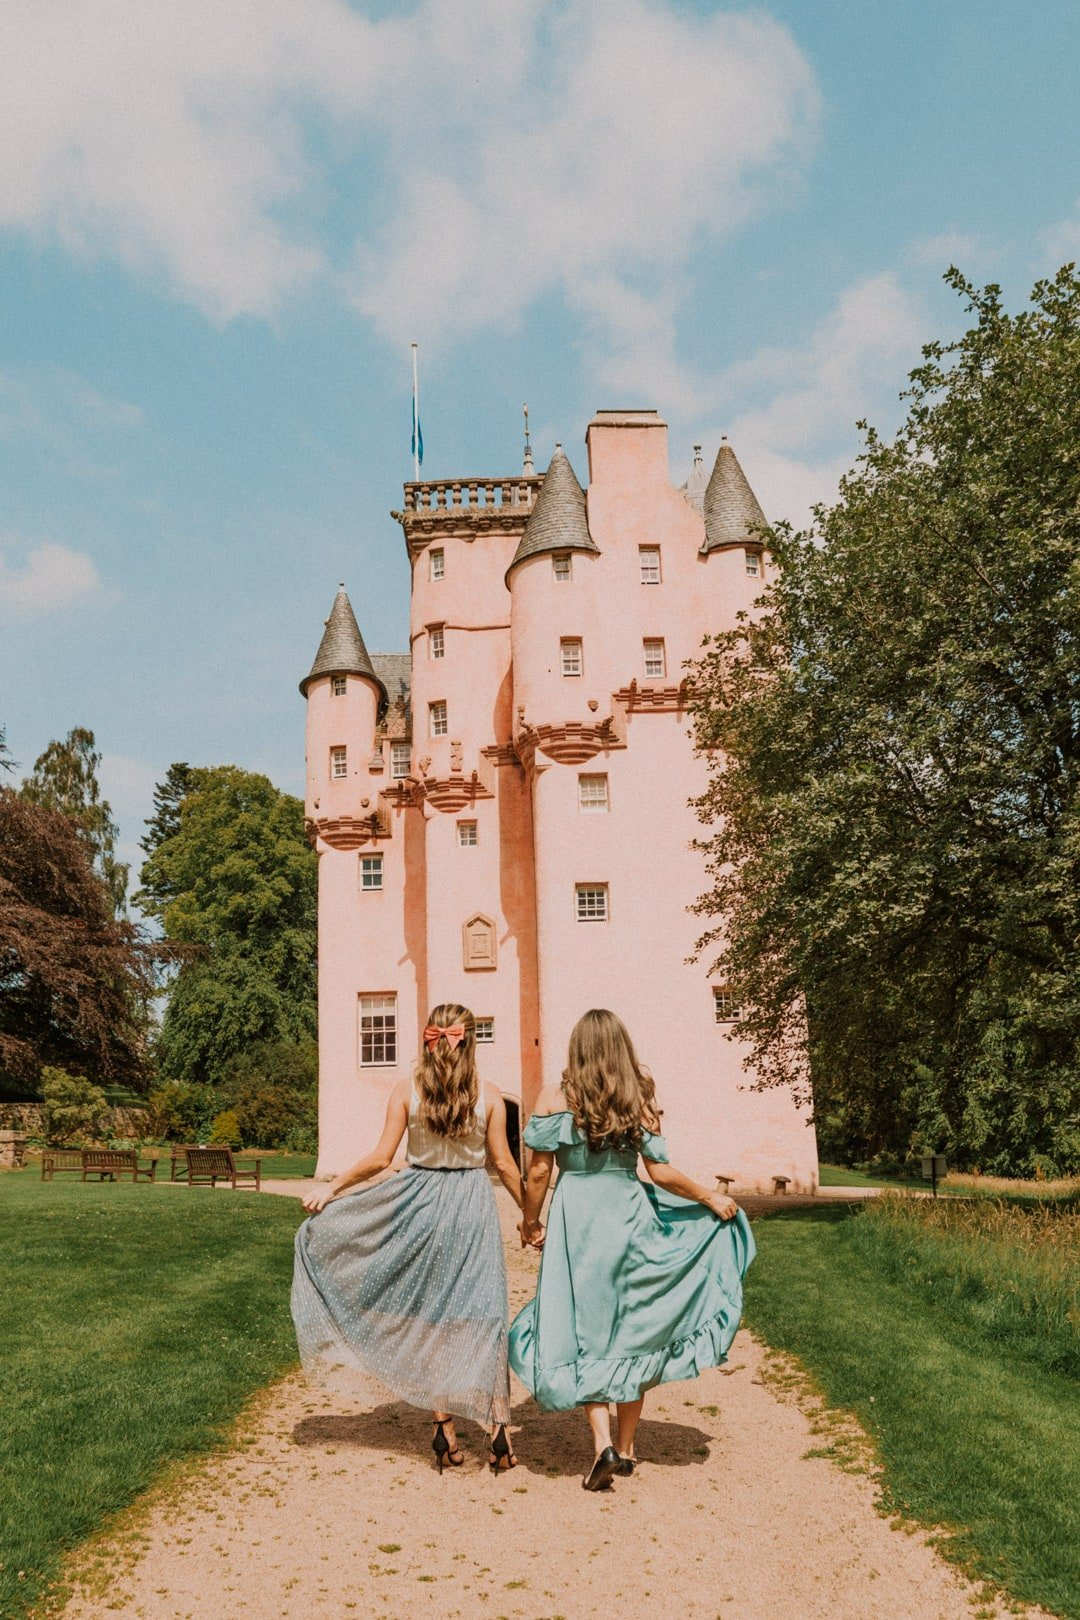 Get to know about some super instagrammable places in my Scotland travel guide